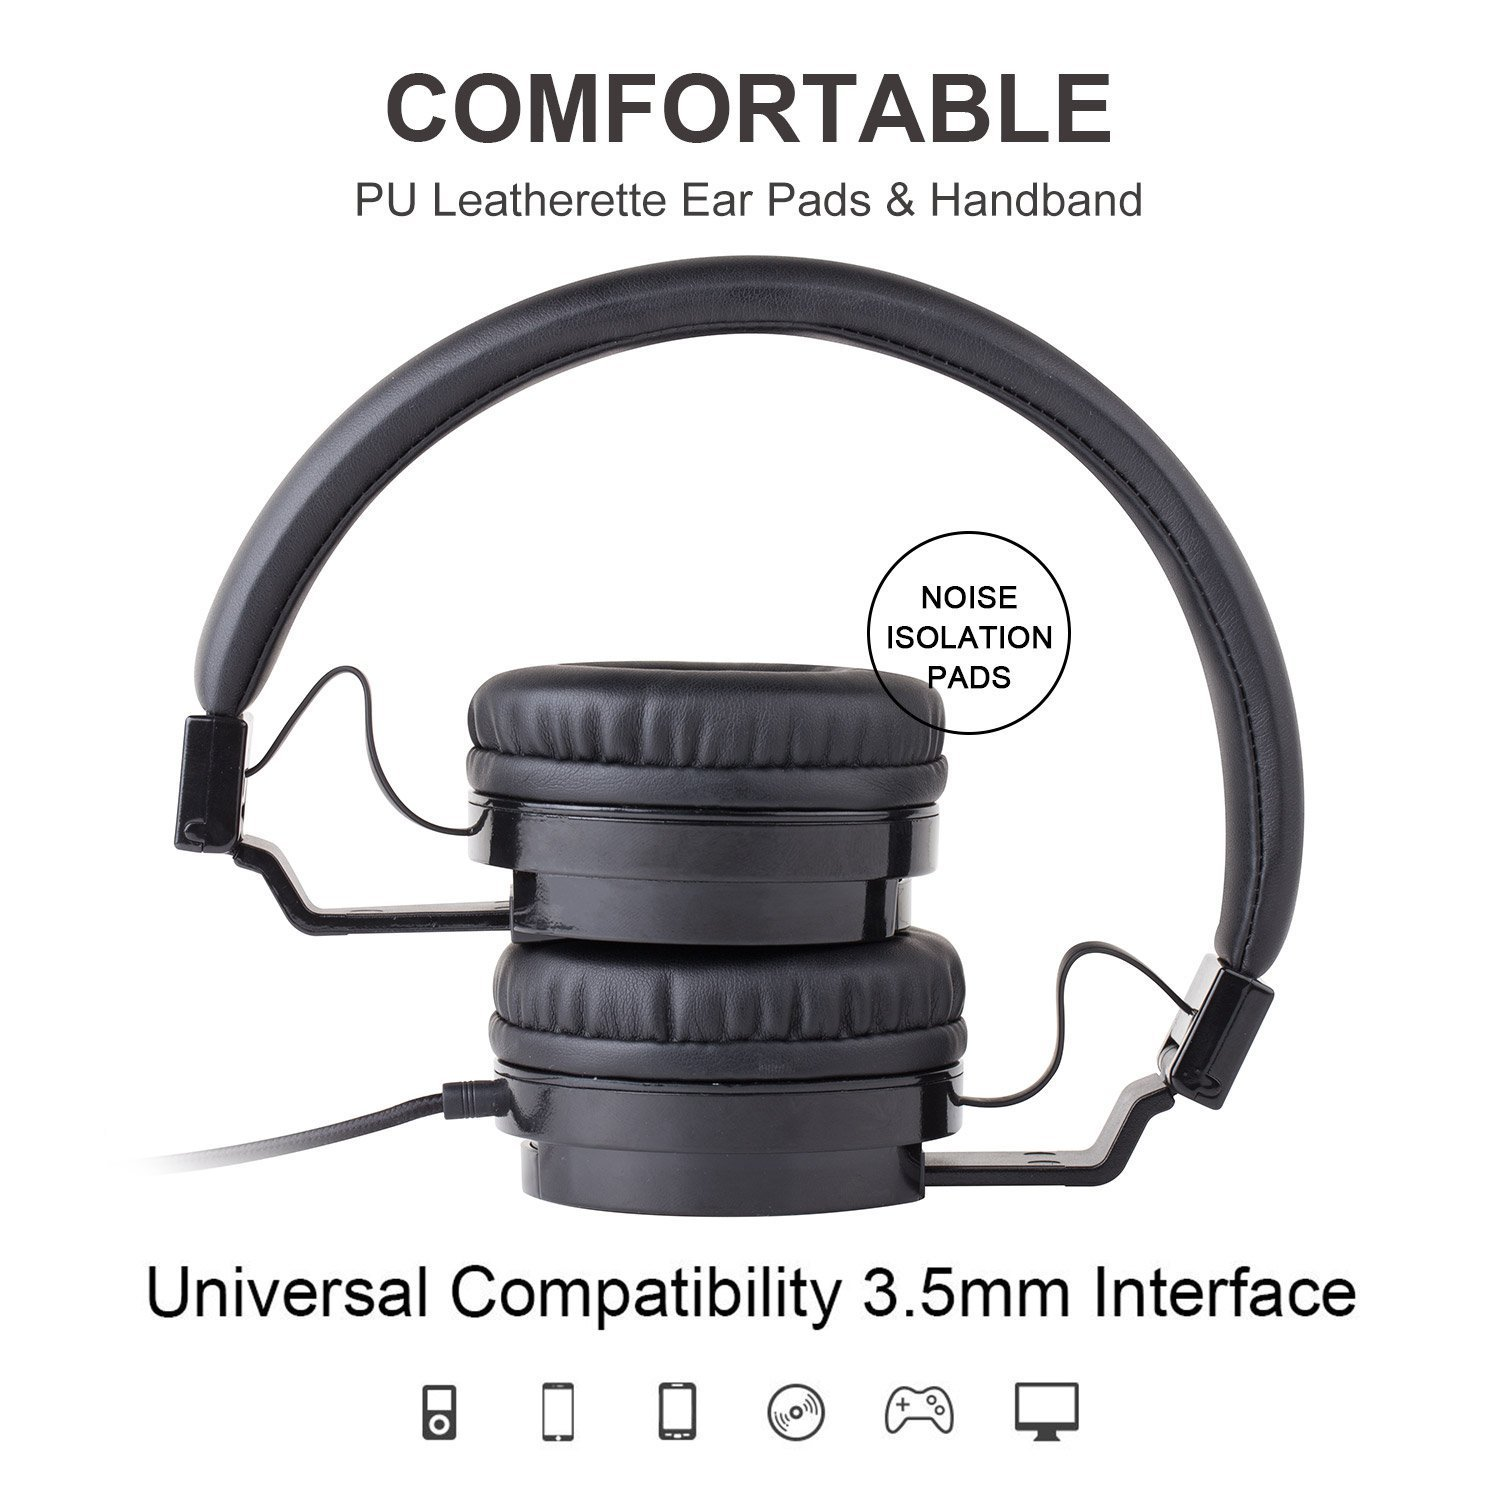 Picun Wired Headphones with Microphones for Computer Smartphones Tablet Laptop MP3/4,Earphones Over Ear Stereo Headsets with Deep Bass for Kids Teens Adults Black by Picun (Image #4)